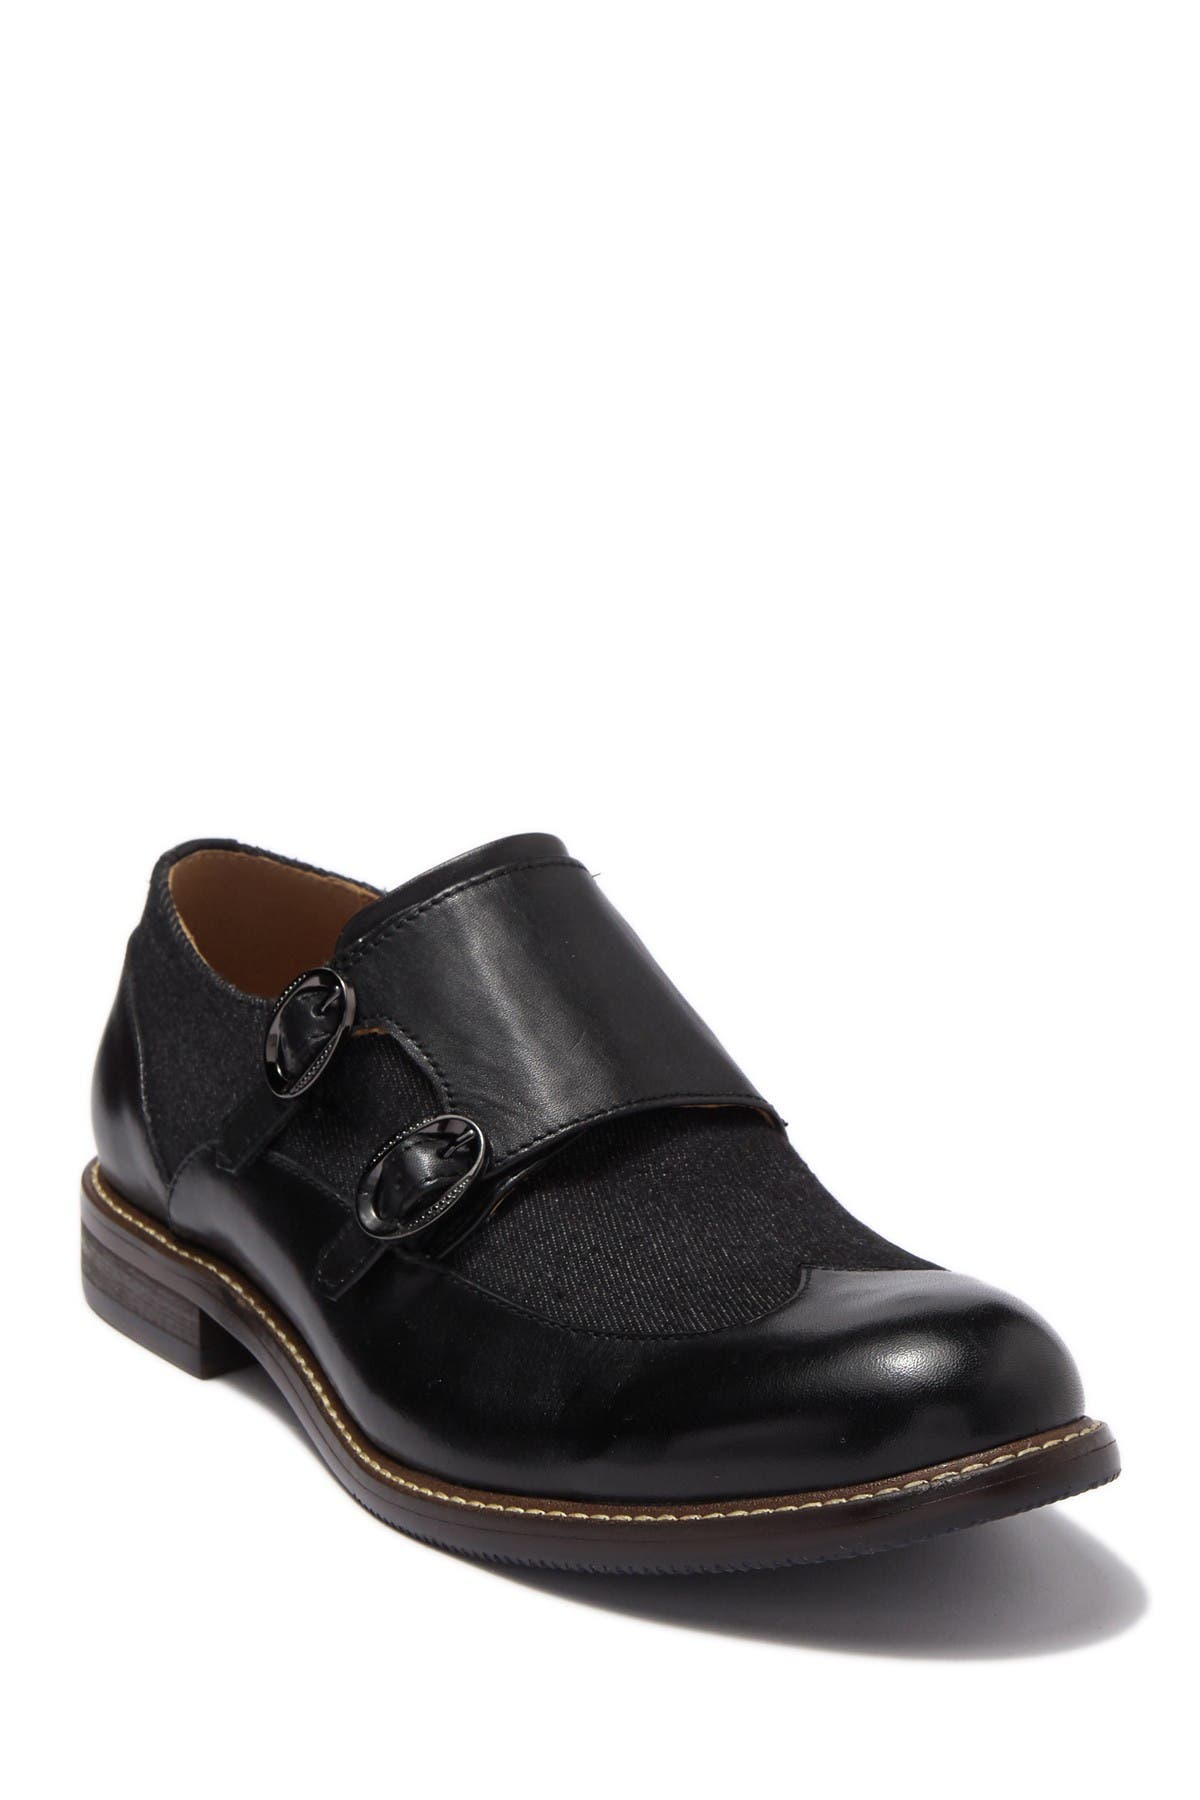 Image of Vintage Foundry Luther Wingtip Monk Strap Shoe